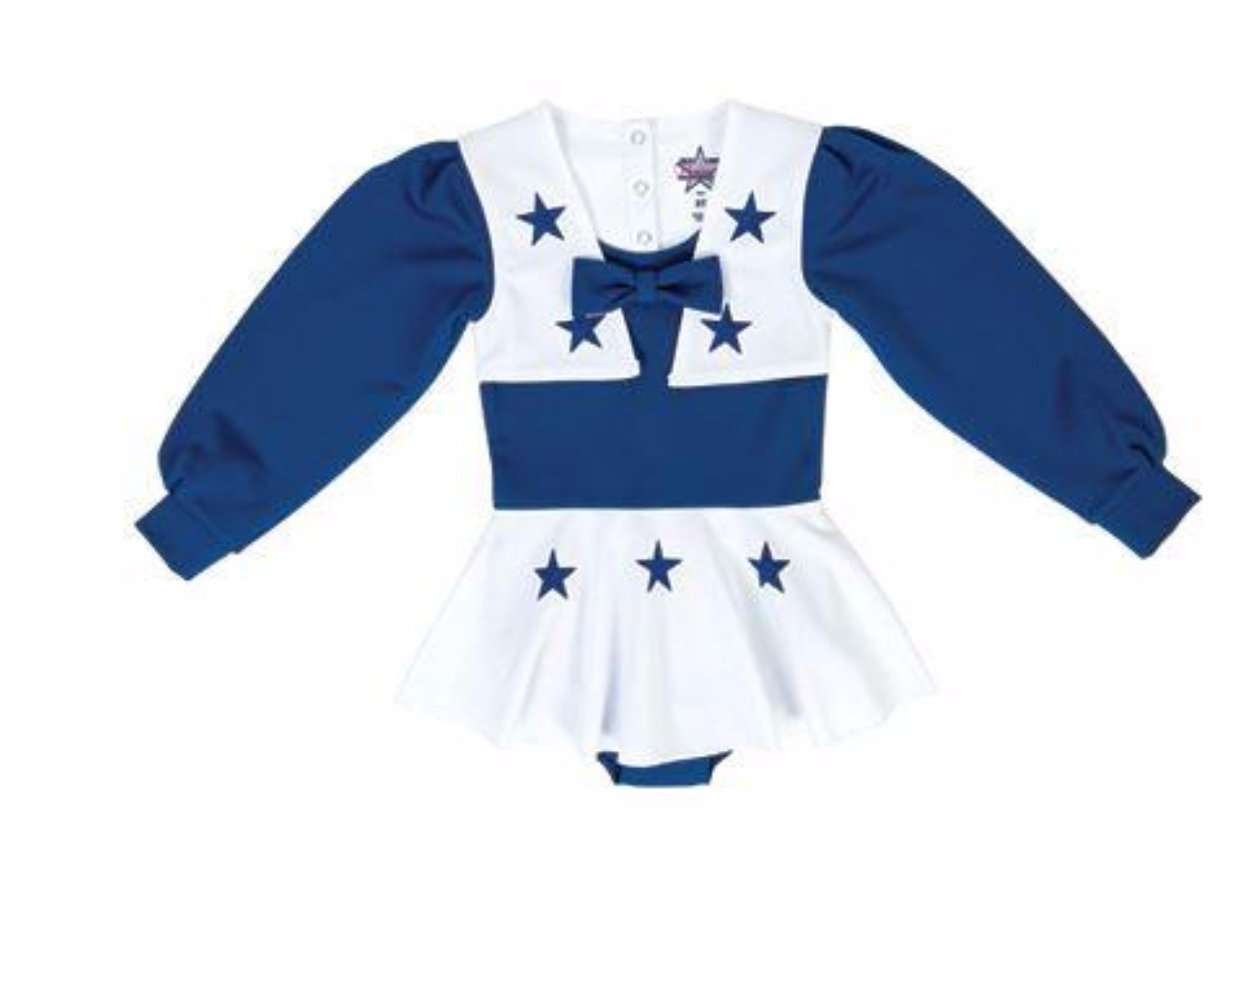 18e66c689a6 Dallas Cowboys Youth Girls Royal Blue and White Cheer Uniform | eBay